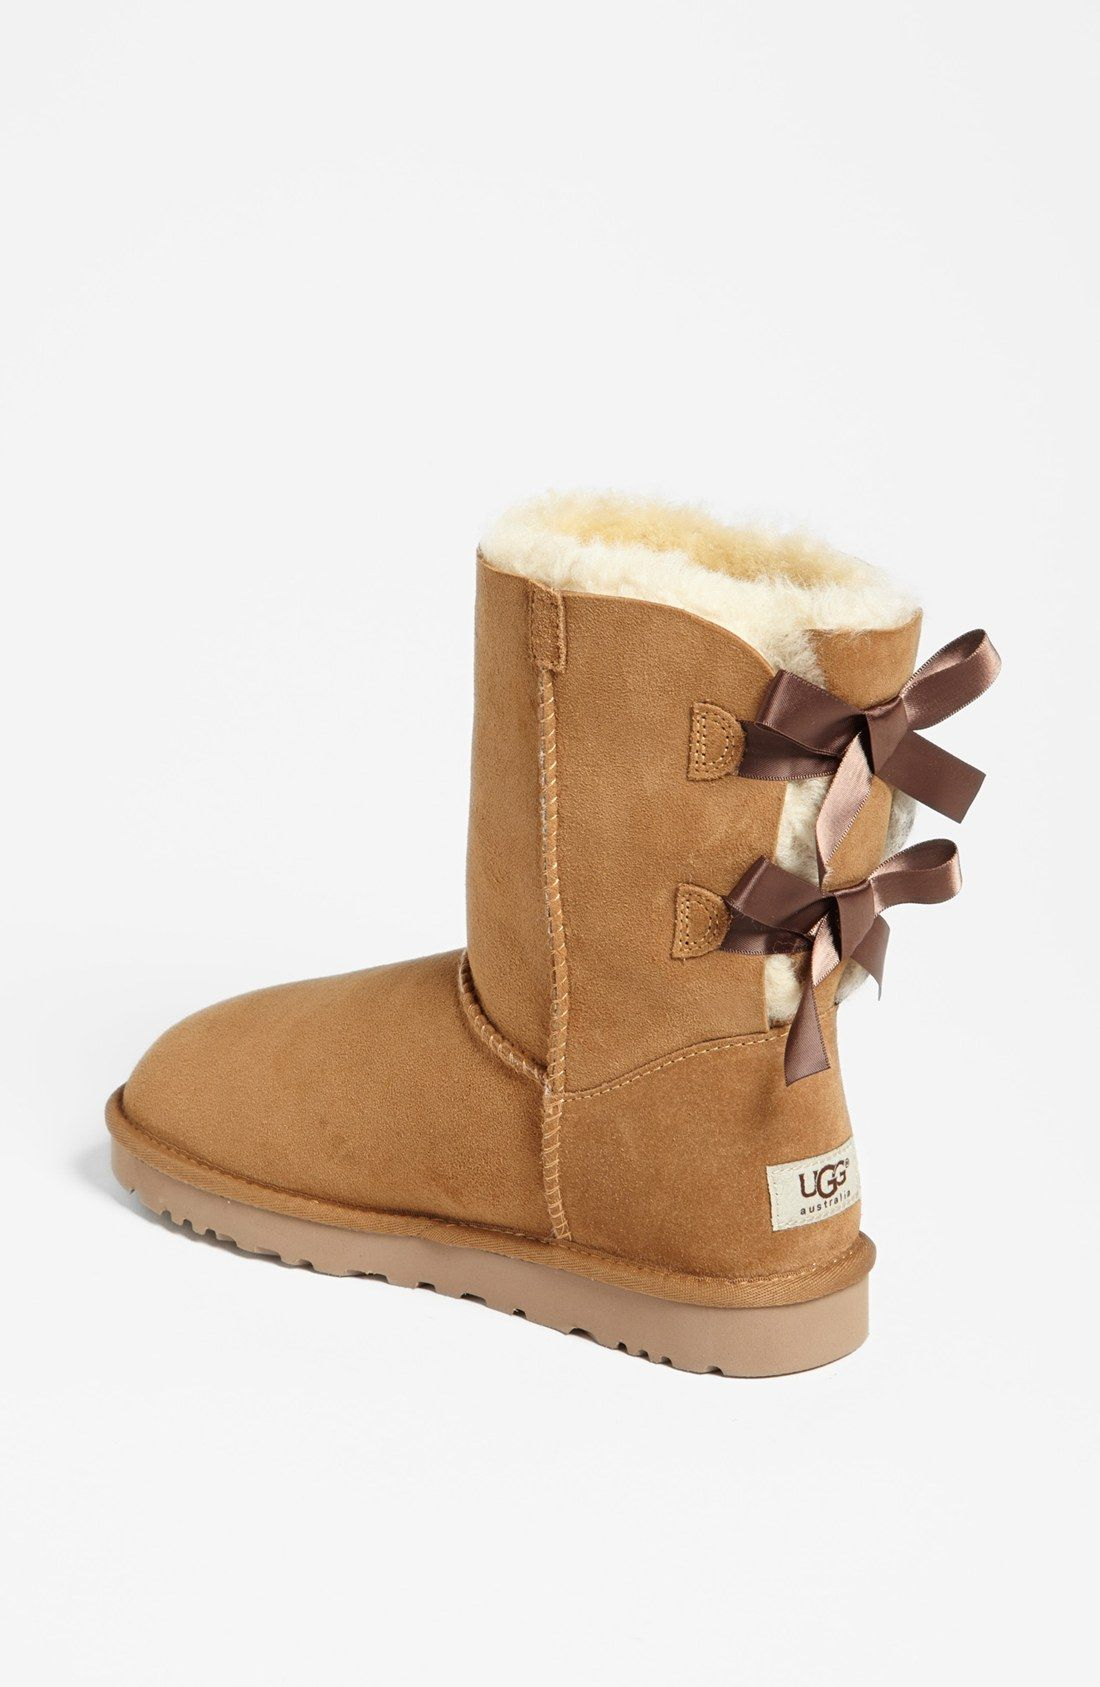 Keeping warm in these Bailey Bow Boots! The bow detail is adorable.